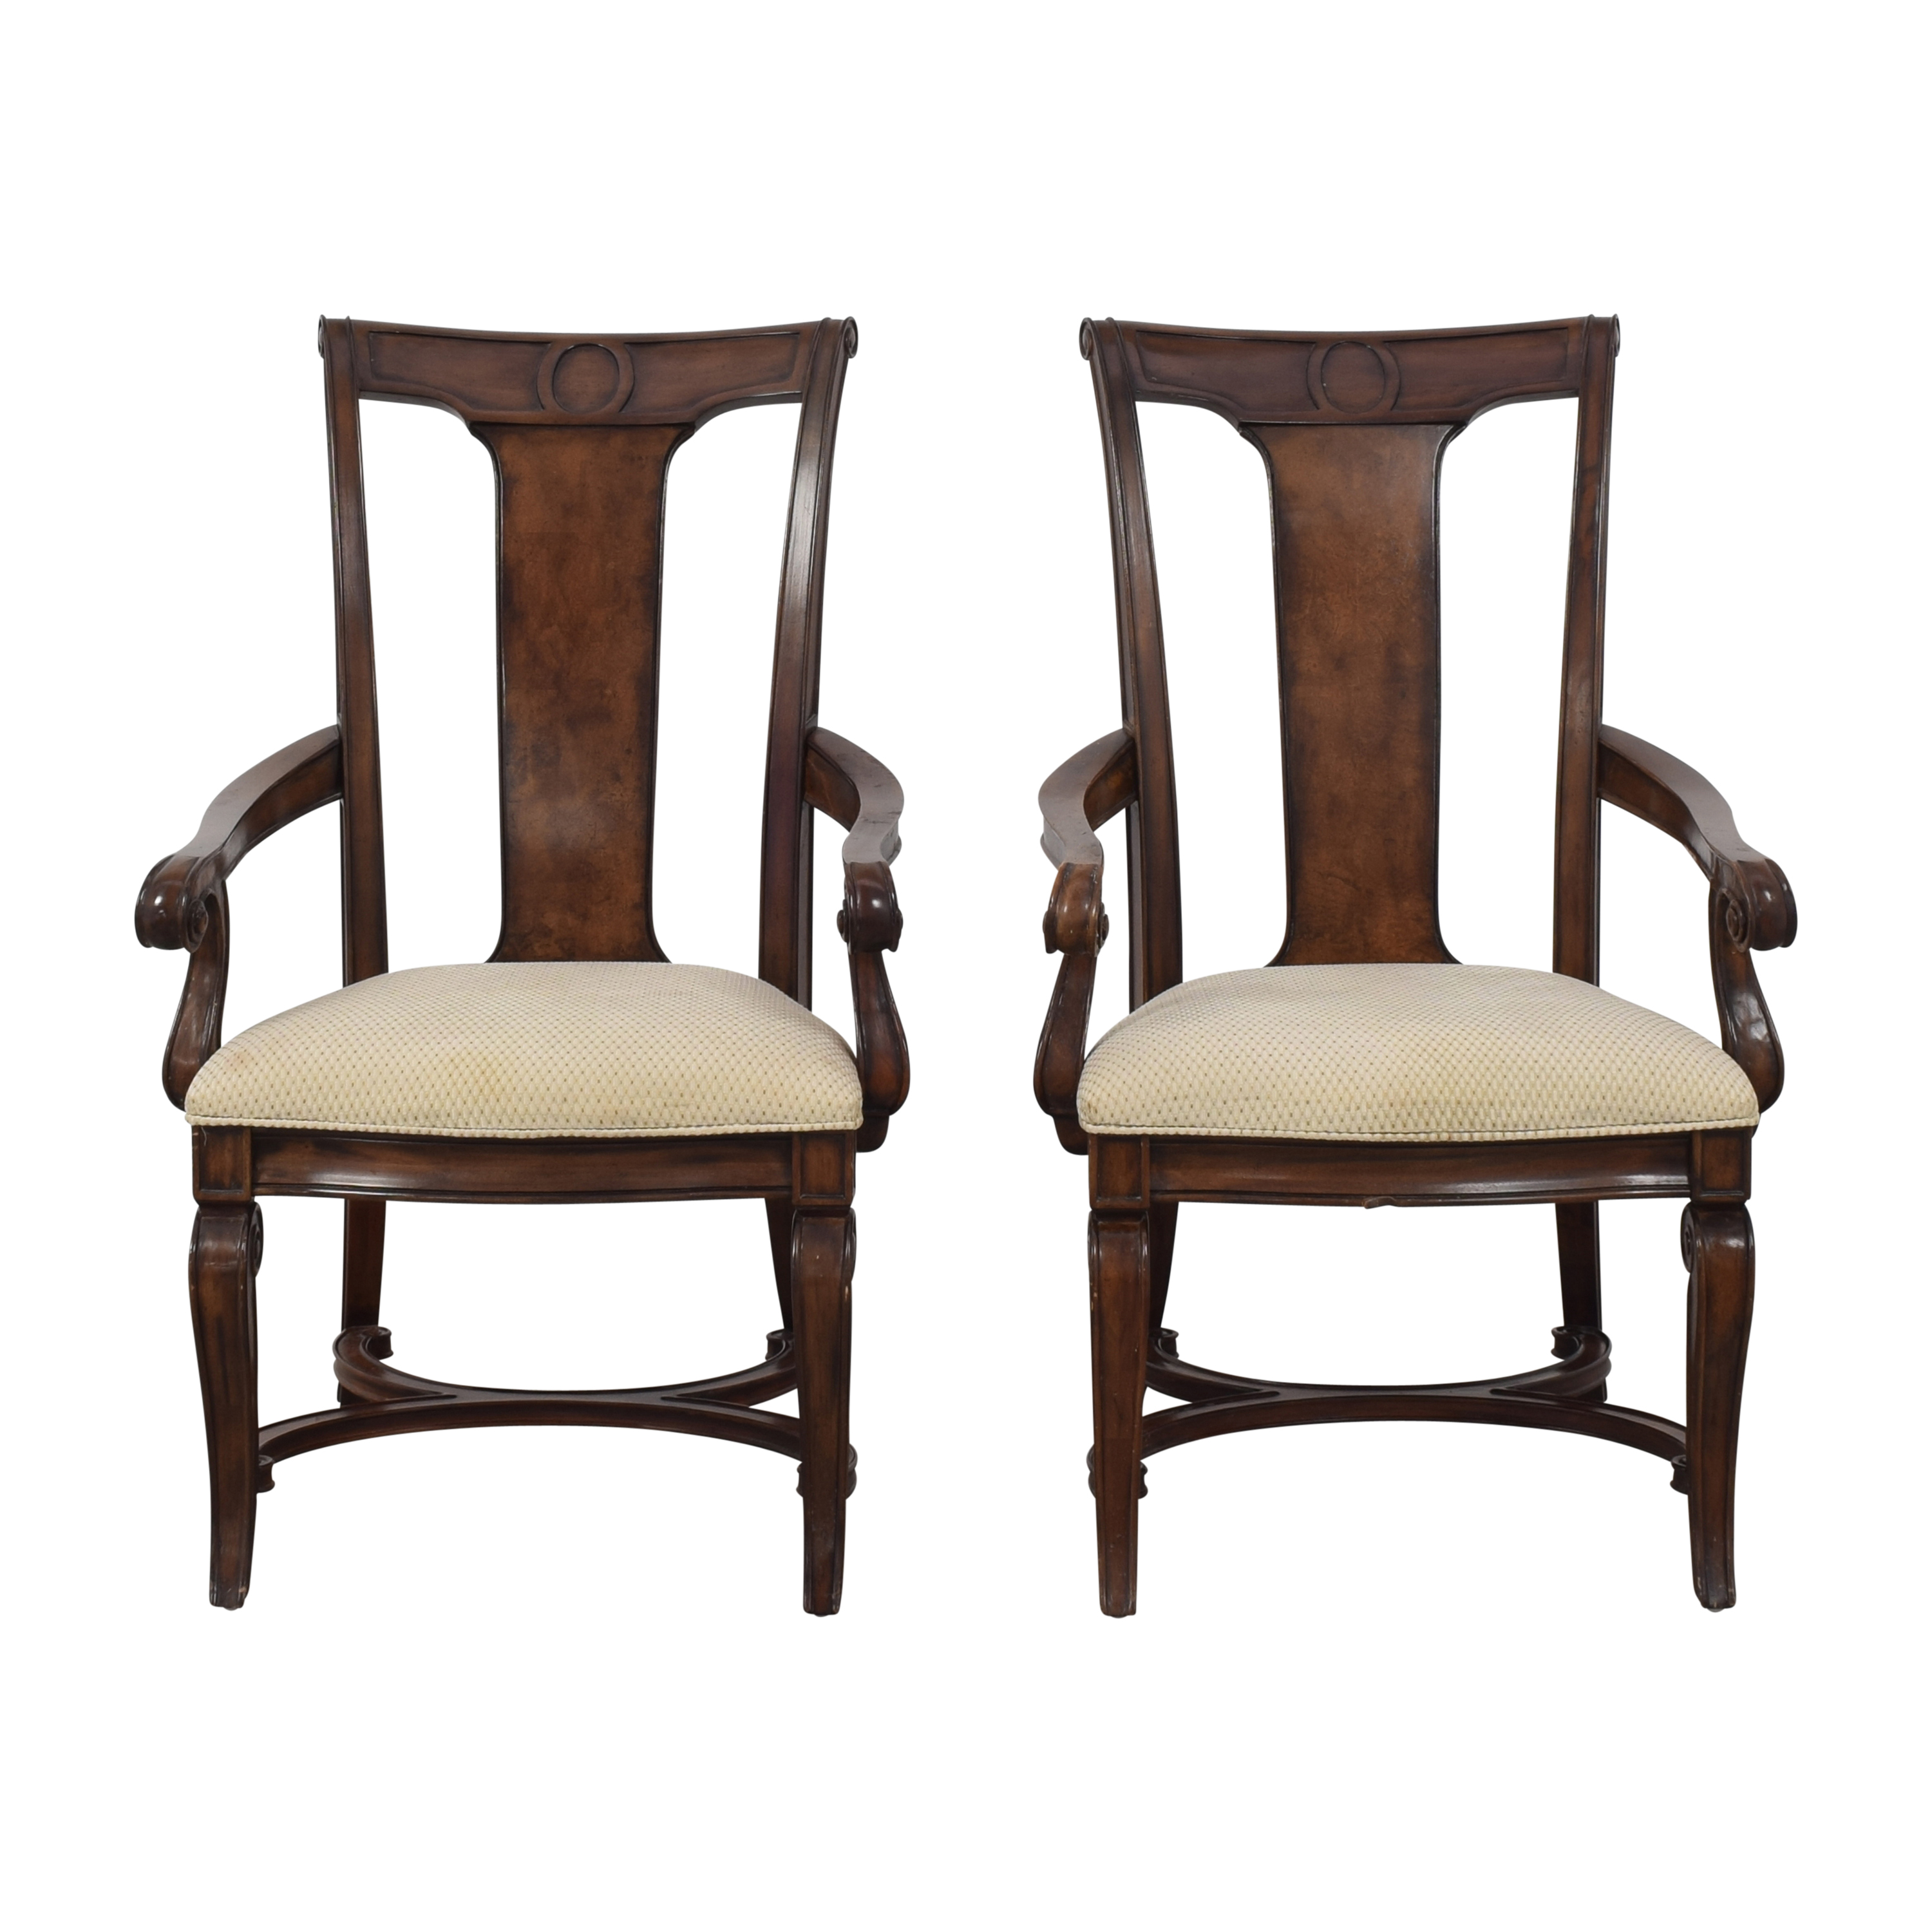 Thomasville Thompsonville Dining Arm Chairs used